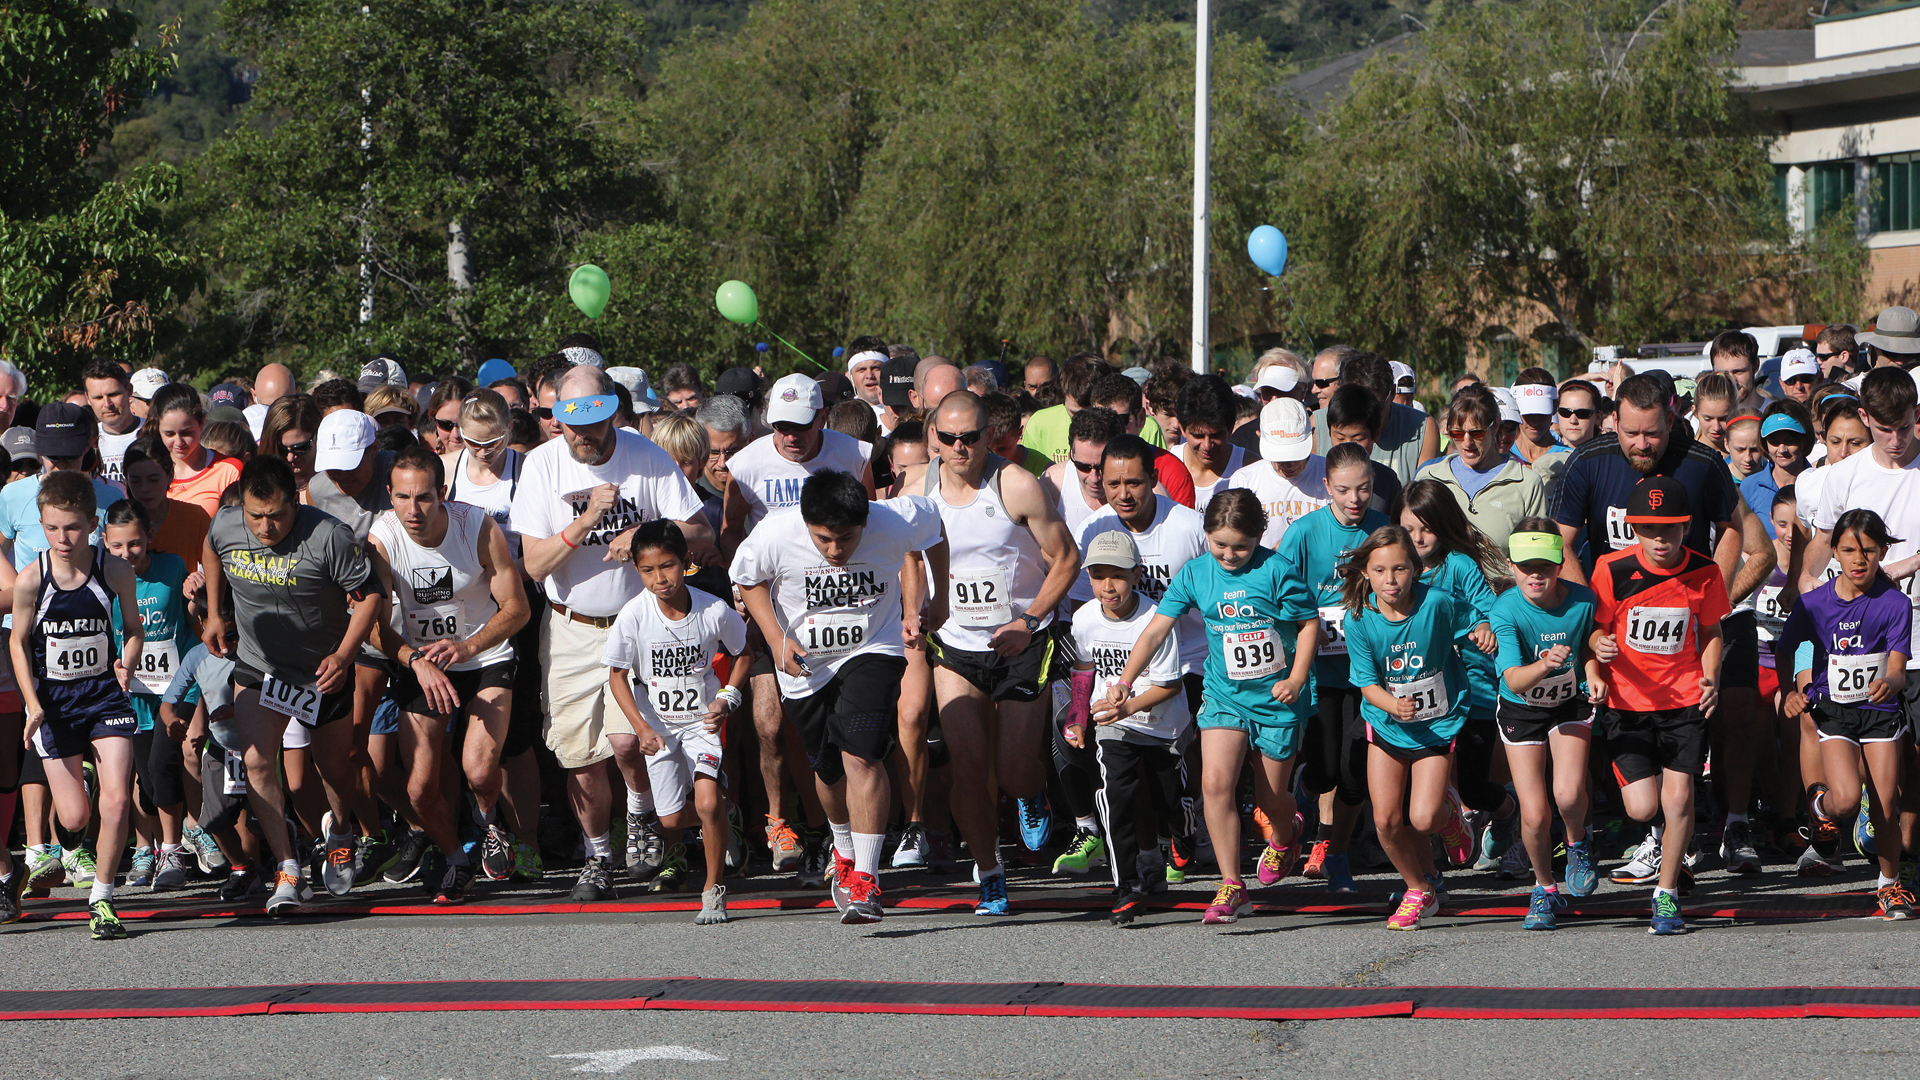 Join the MAC Team in the Bay Area Human Race